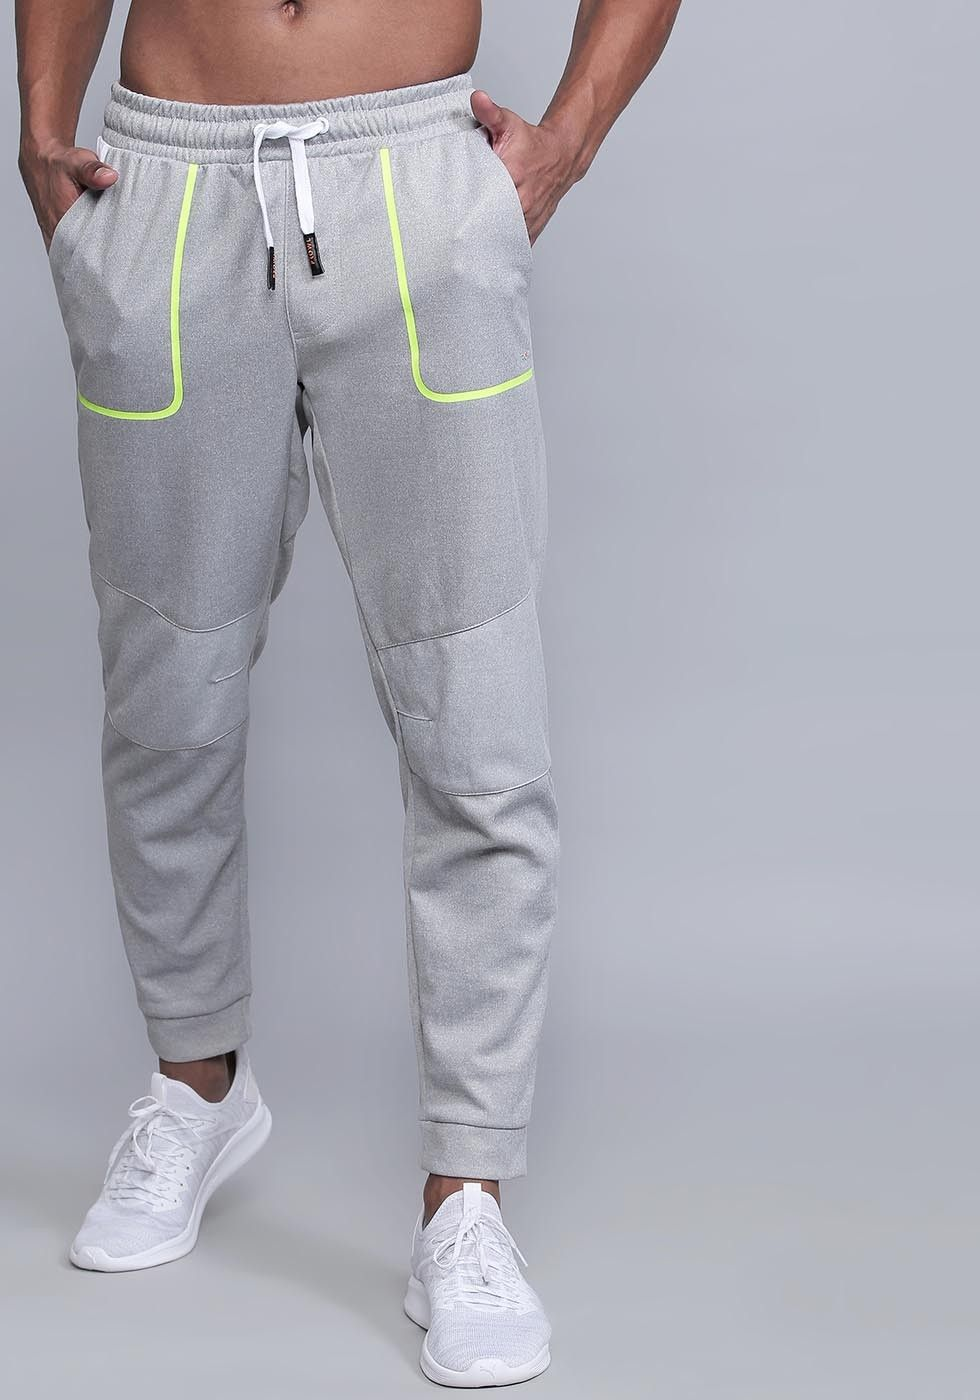 2a170b5ab3e FLUX HANGOUT ACTIVEWEAR JOGGERS BY PROWL ₹1,999.00 | Prowlactive ...